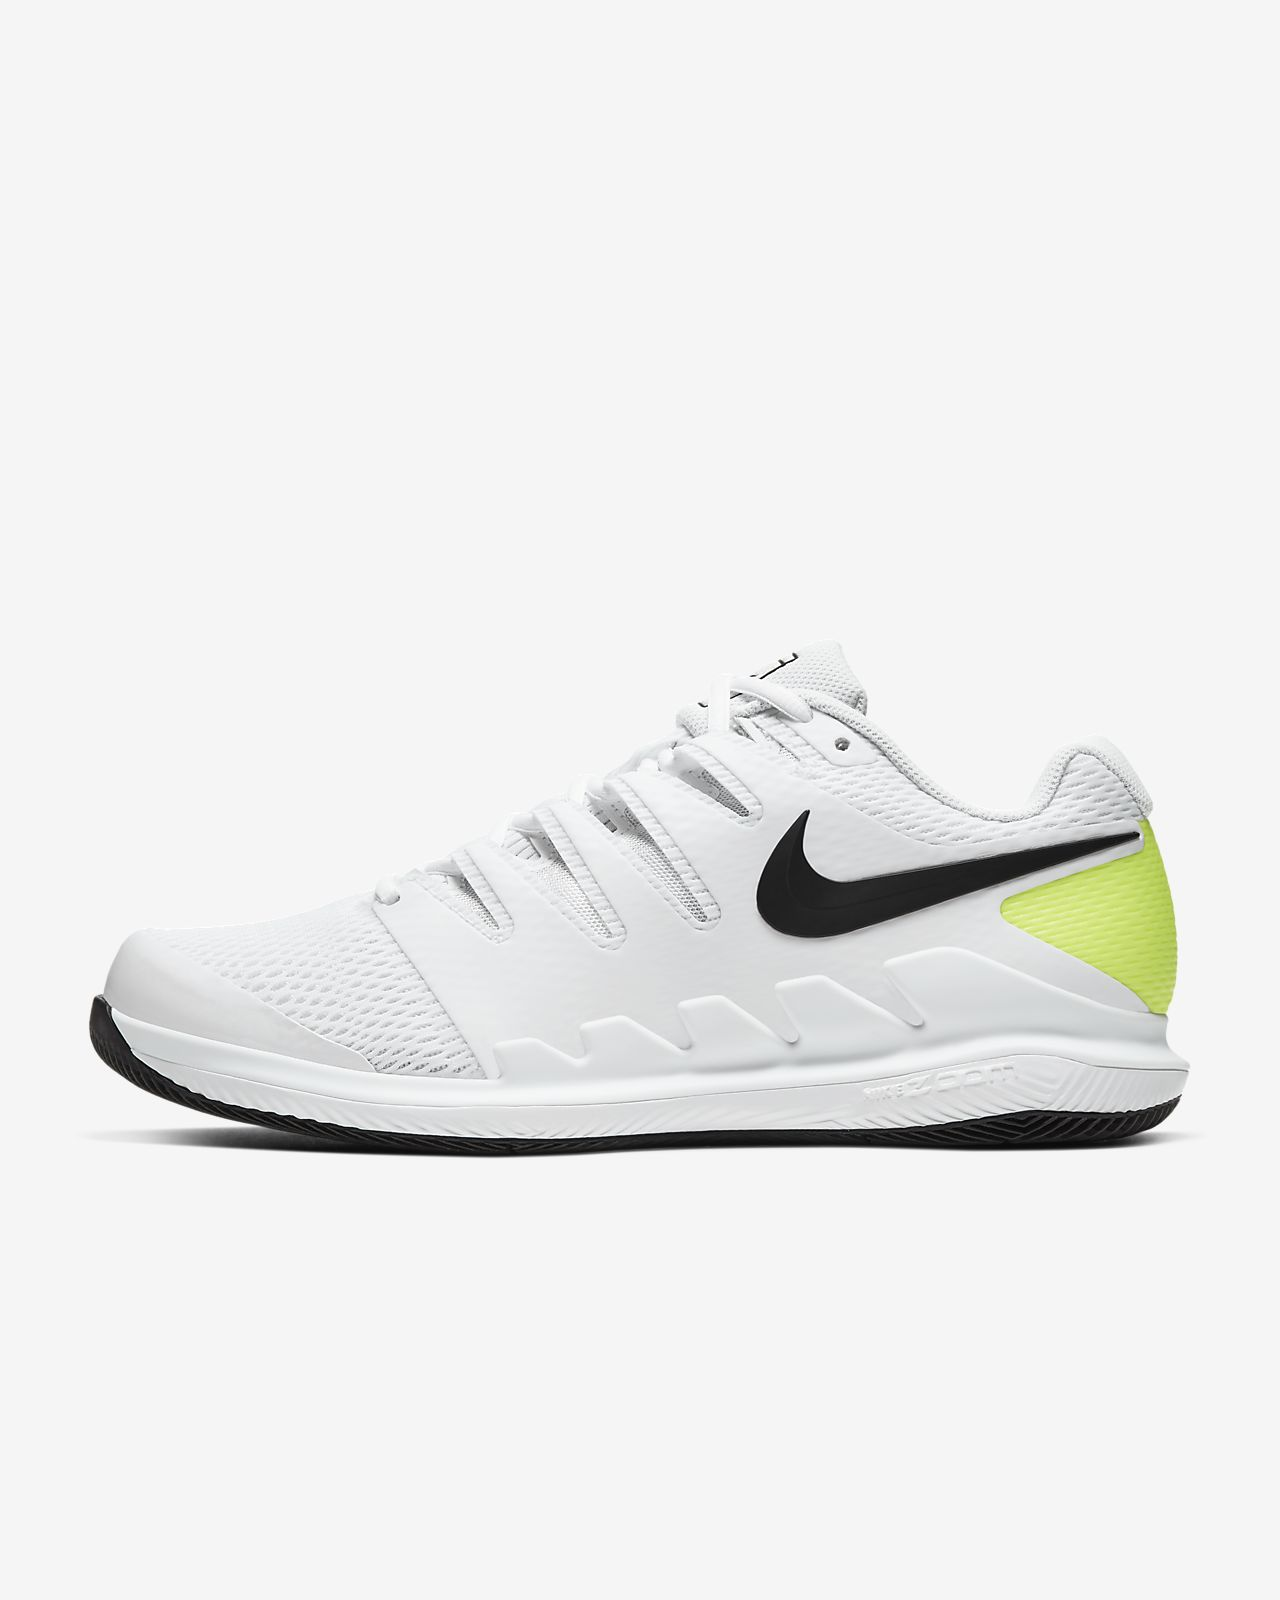 Nike Air Zoom Vapor X Men's Tennis Shoe (Wide)